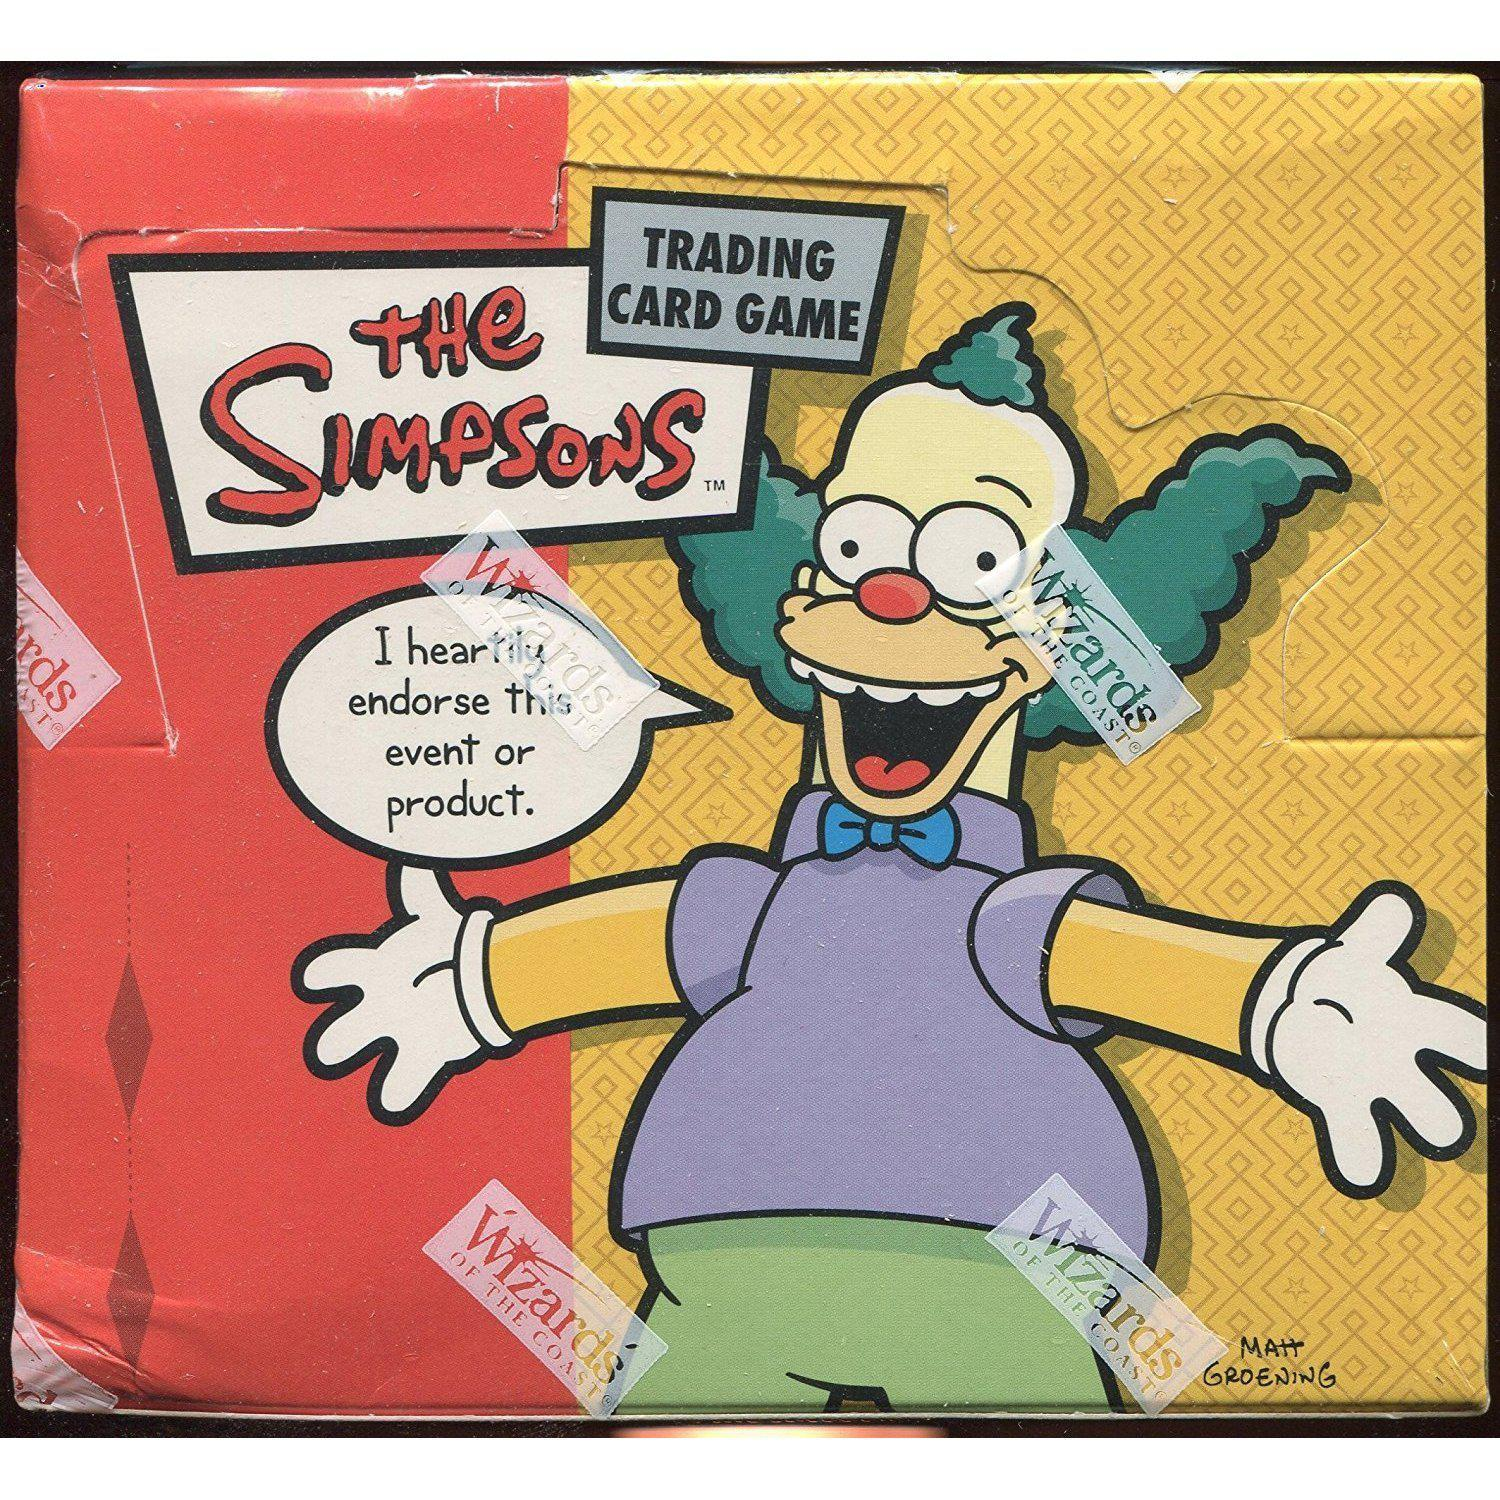 The Simpsons TCG Krusty Approved Booster Box - Cubox Australia